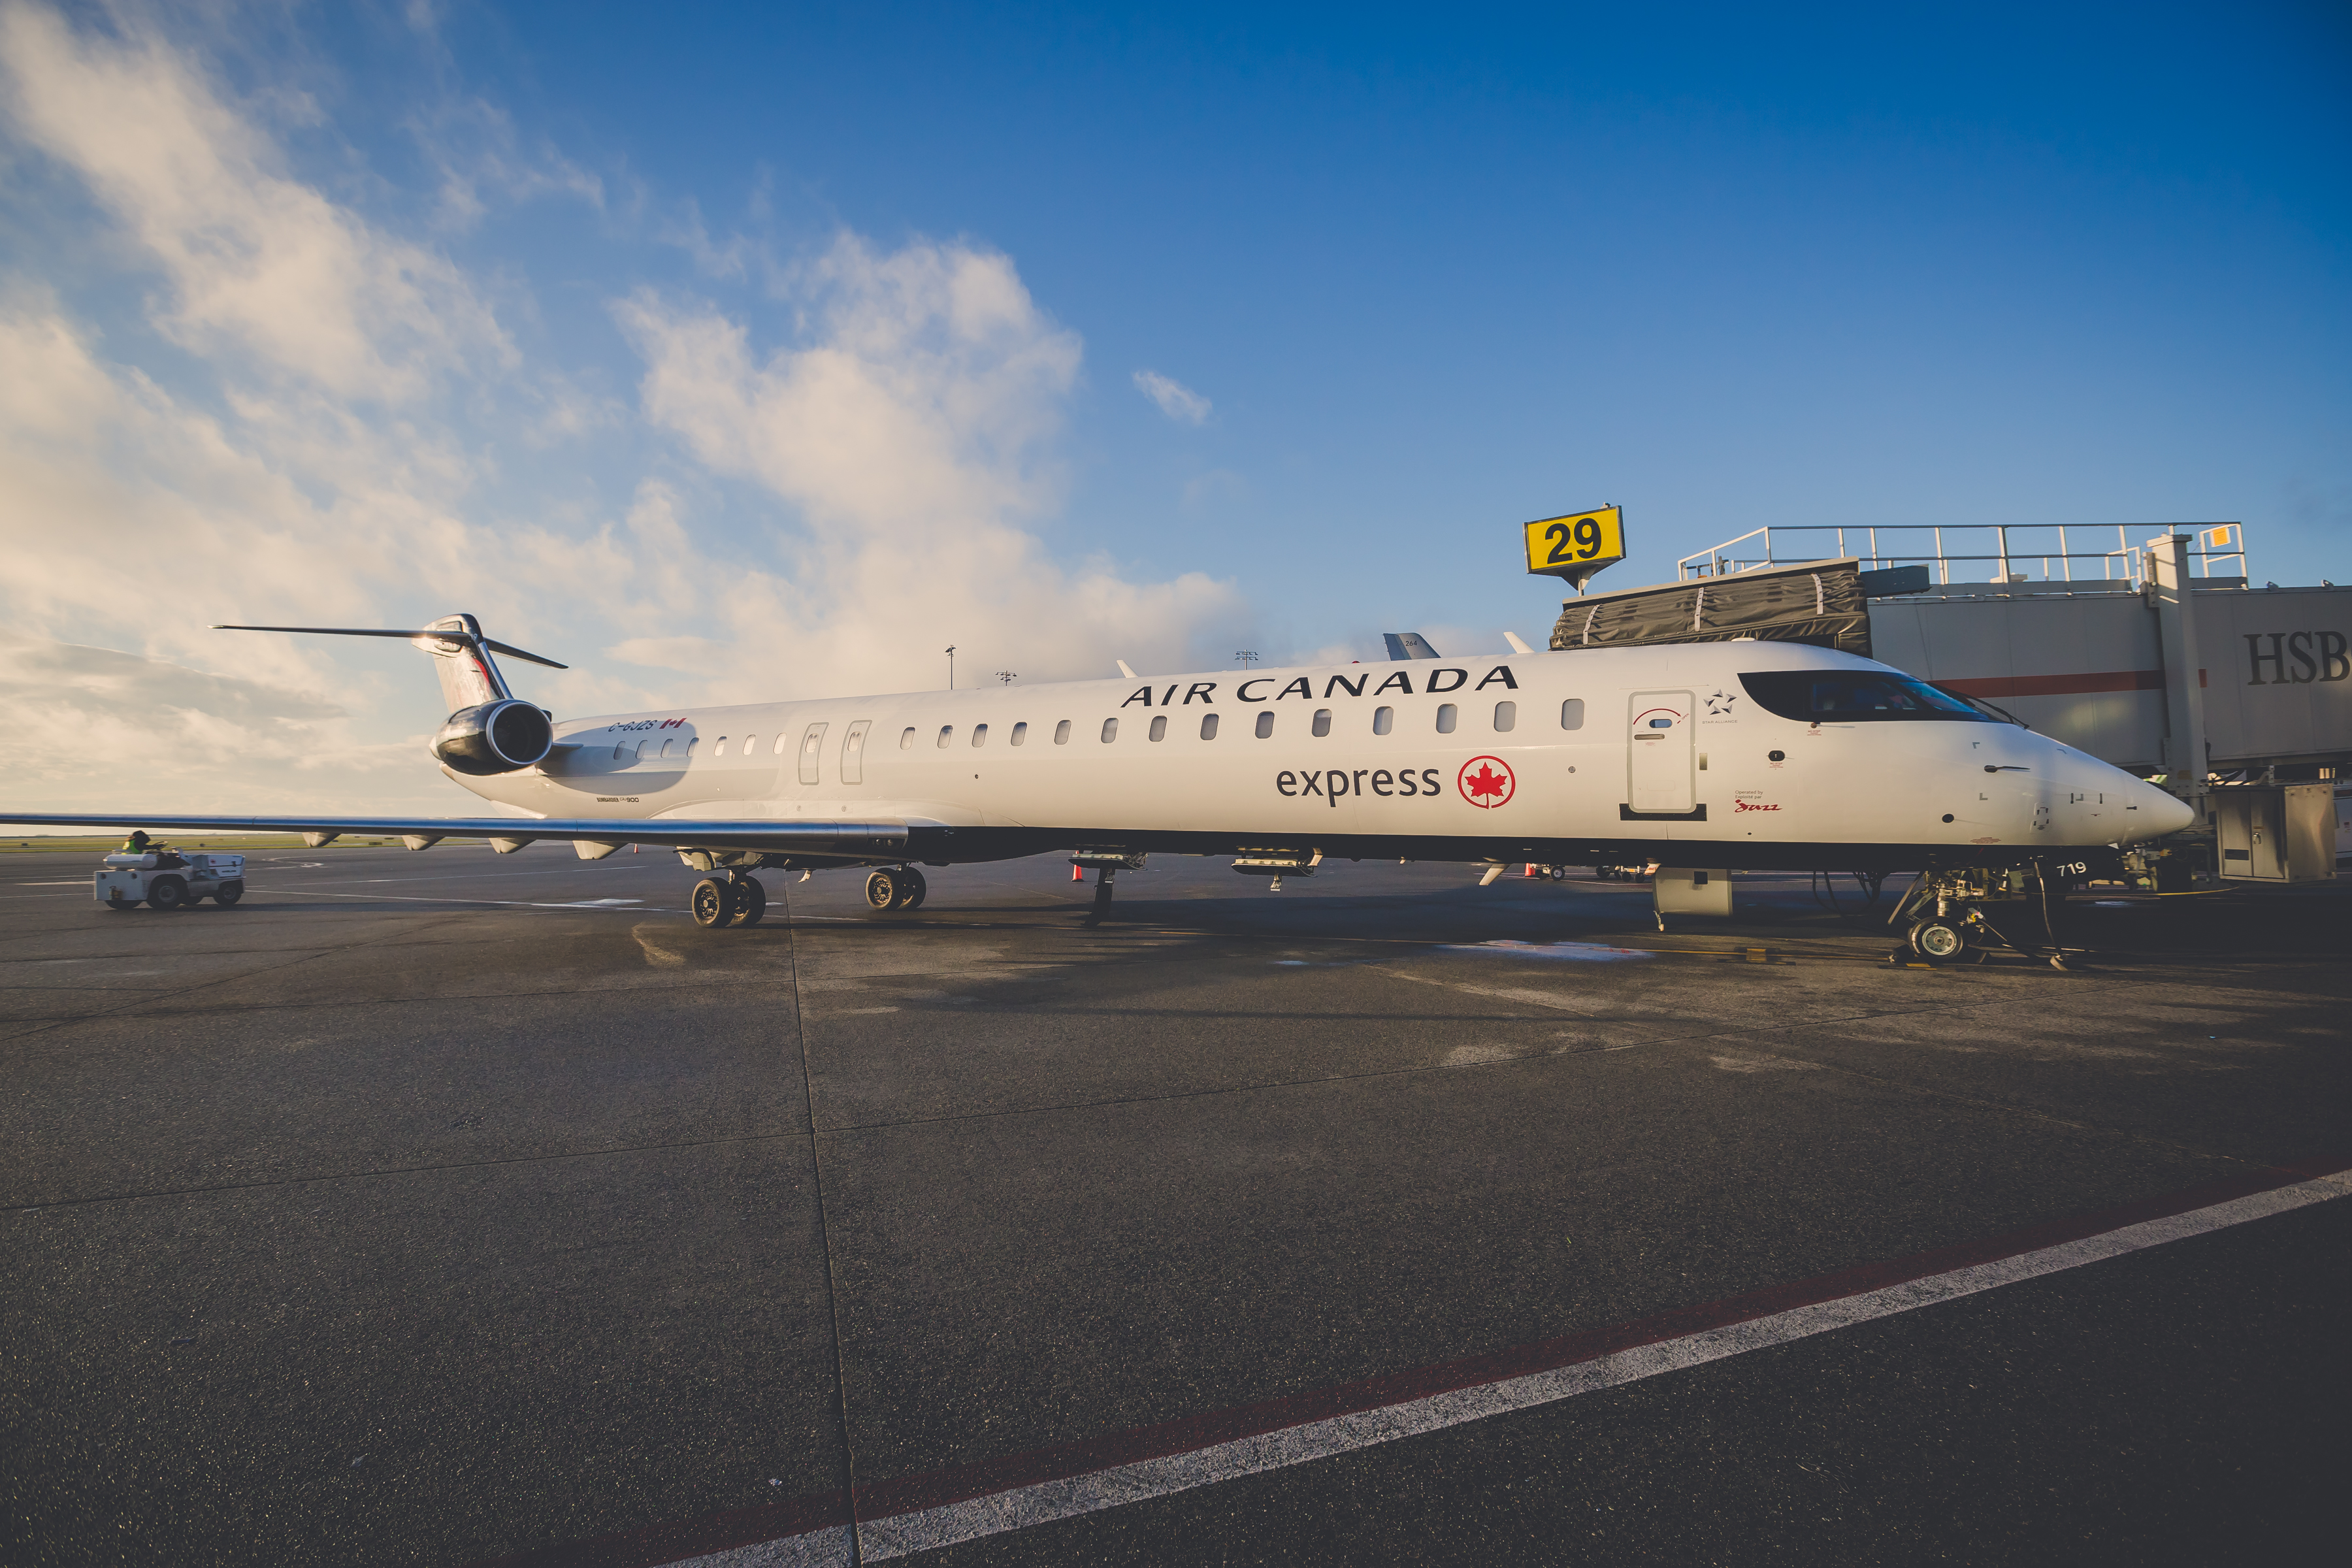 Air Canada Express CRJ Aircraft for Yellowknife inaugural